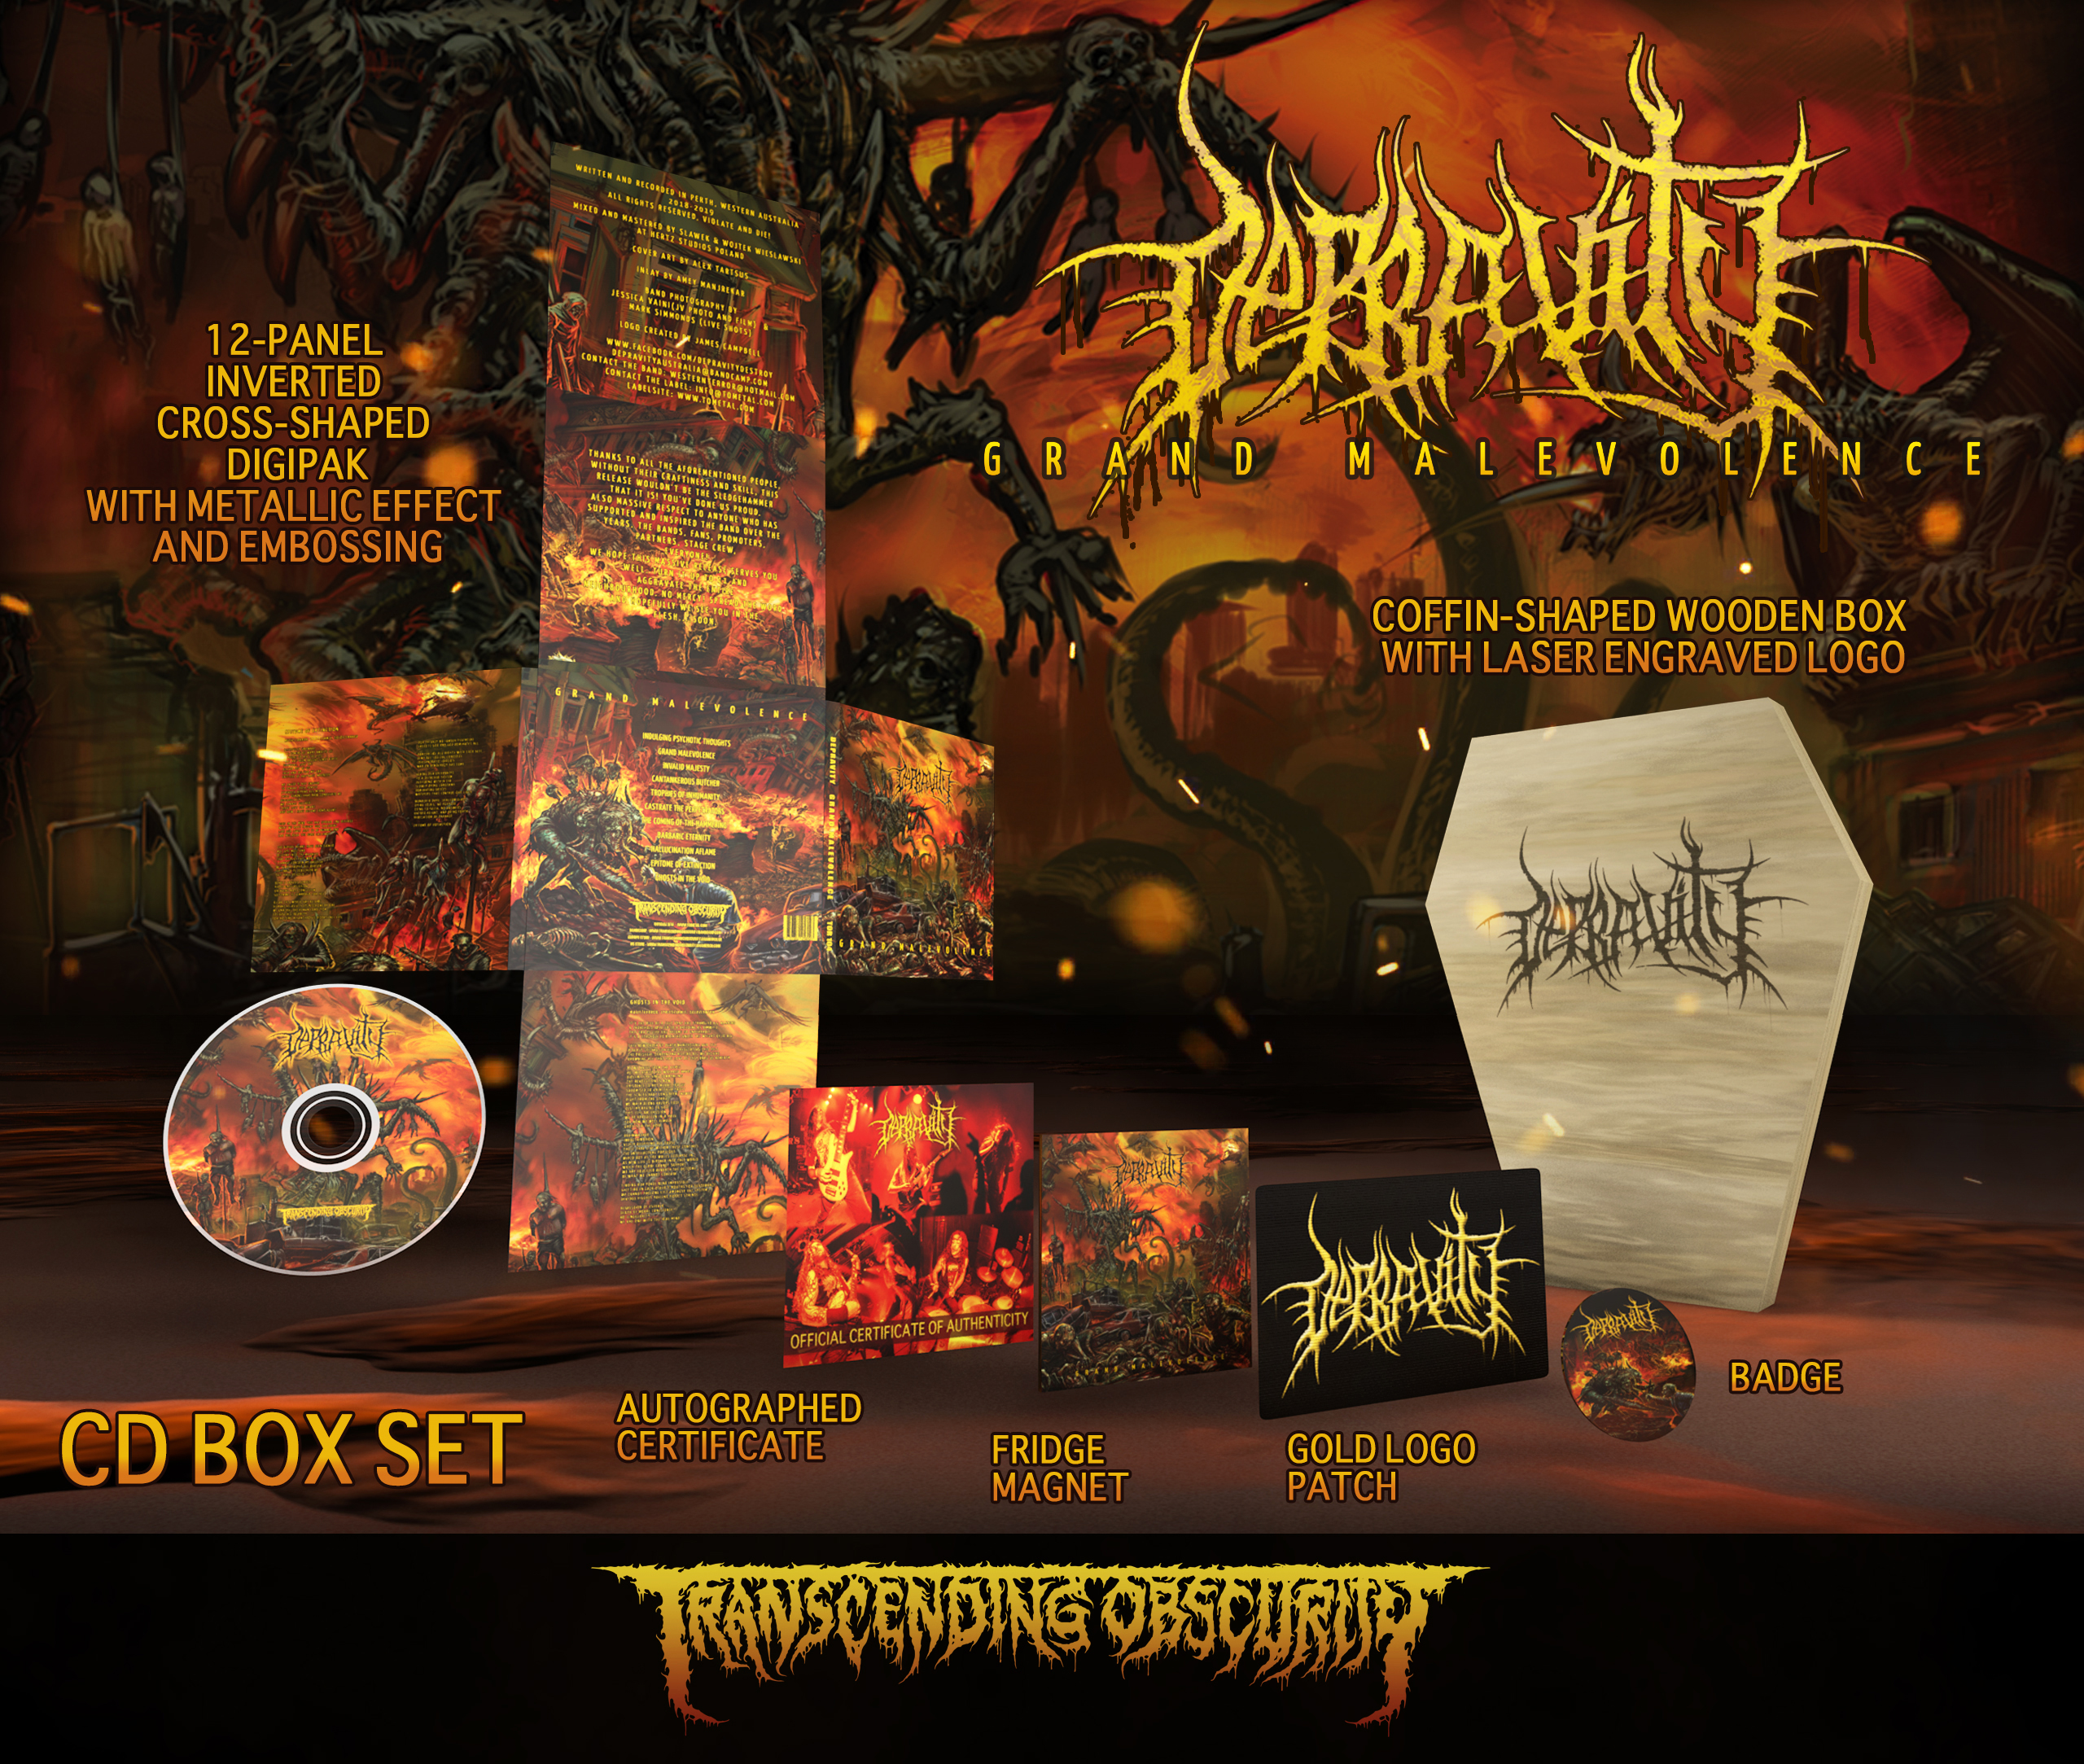 DEPRAVITY (Aus) - Grand Malevolence Wooden Coffin-Shaped CD Box Set (Limited to 100)